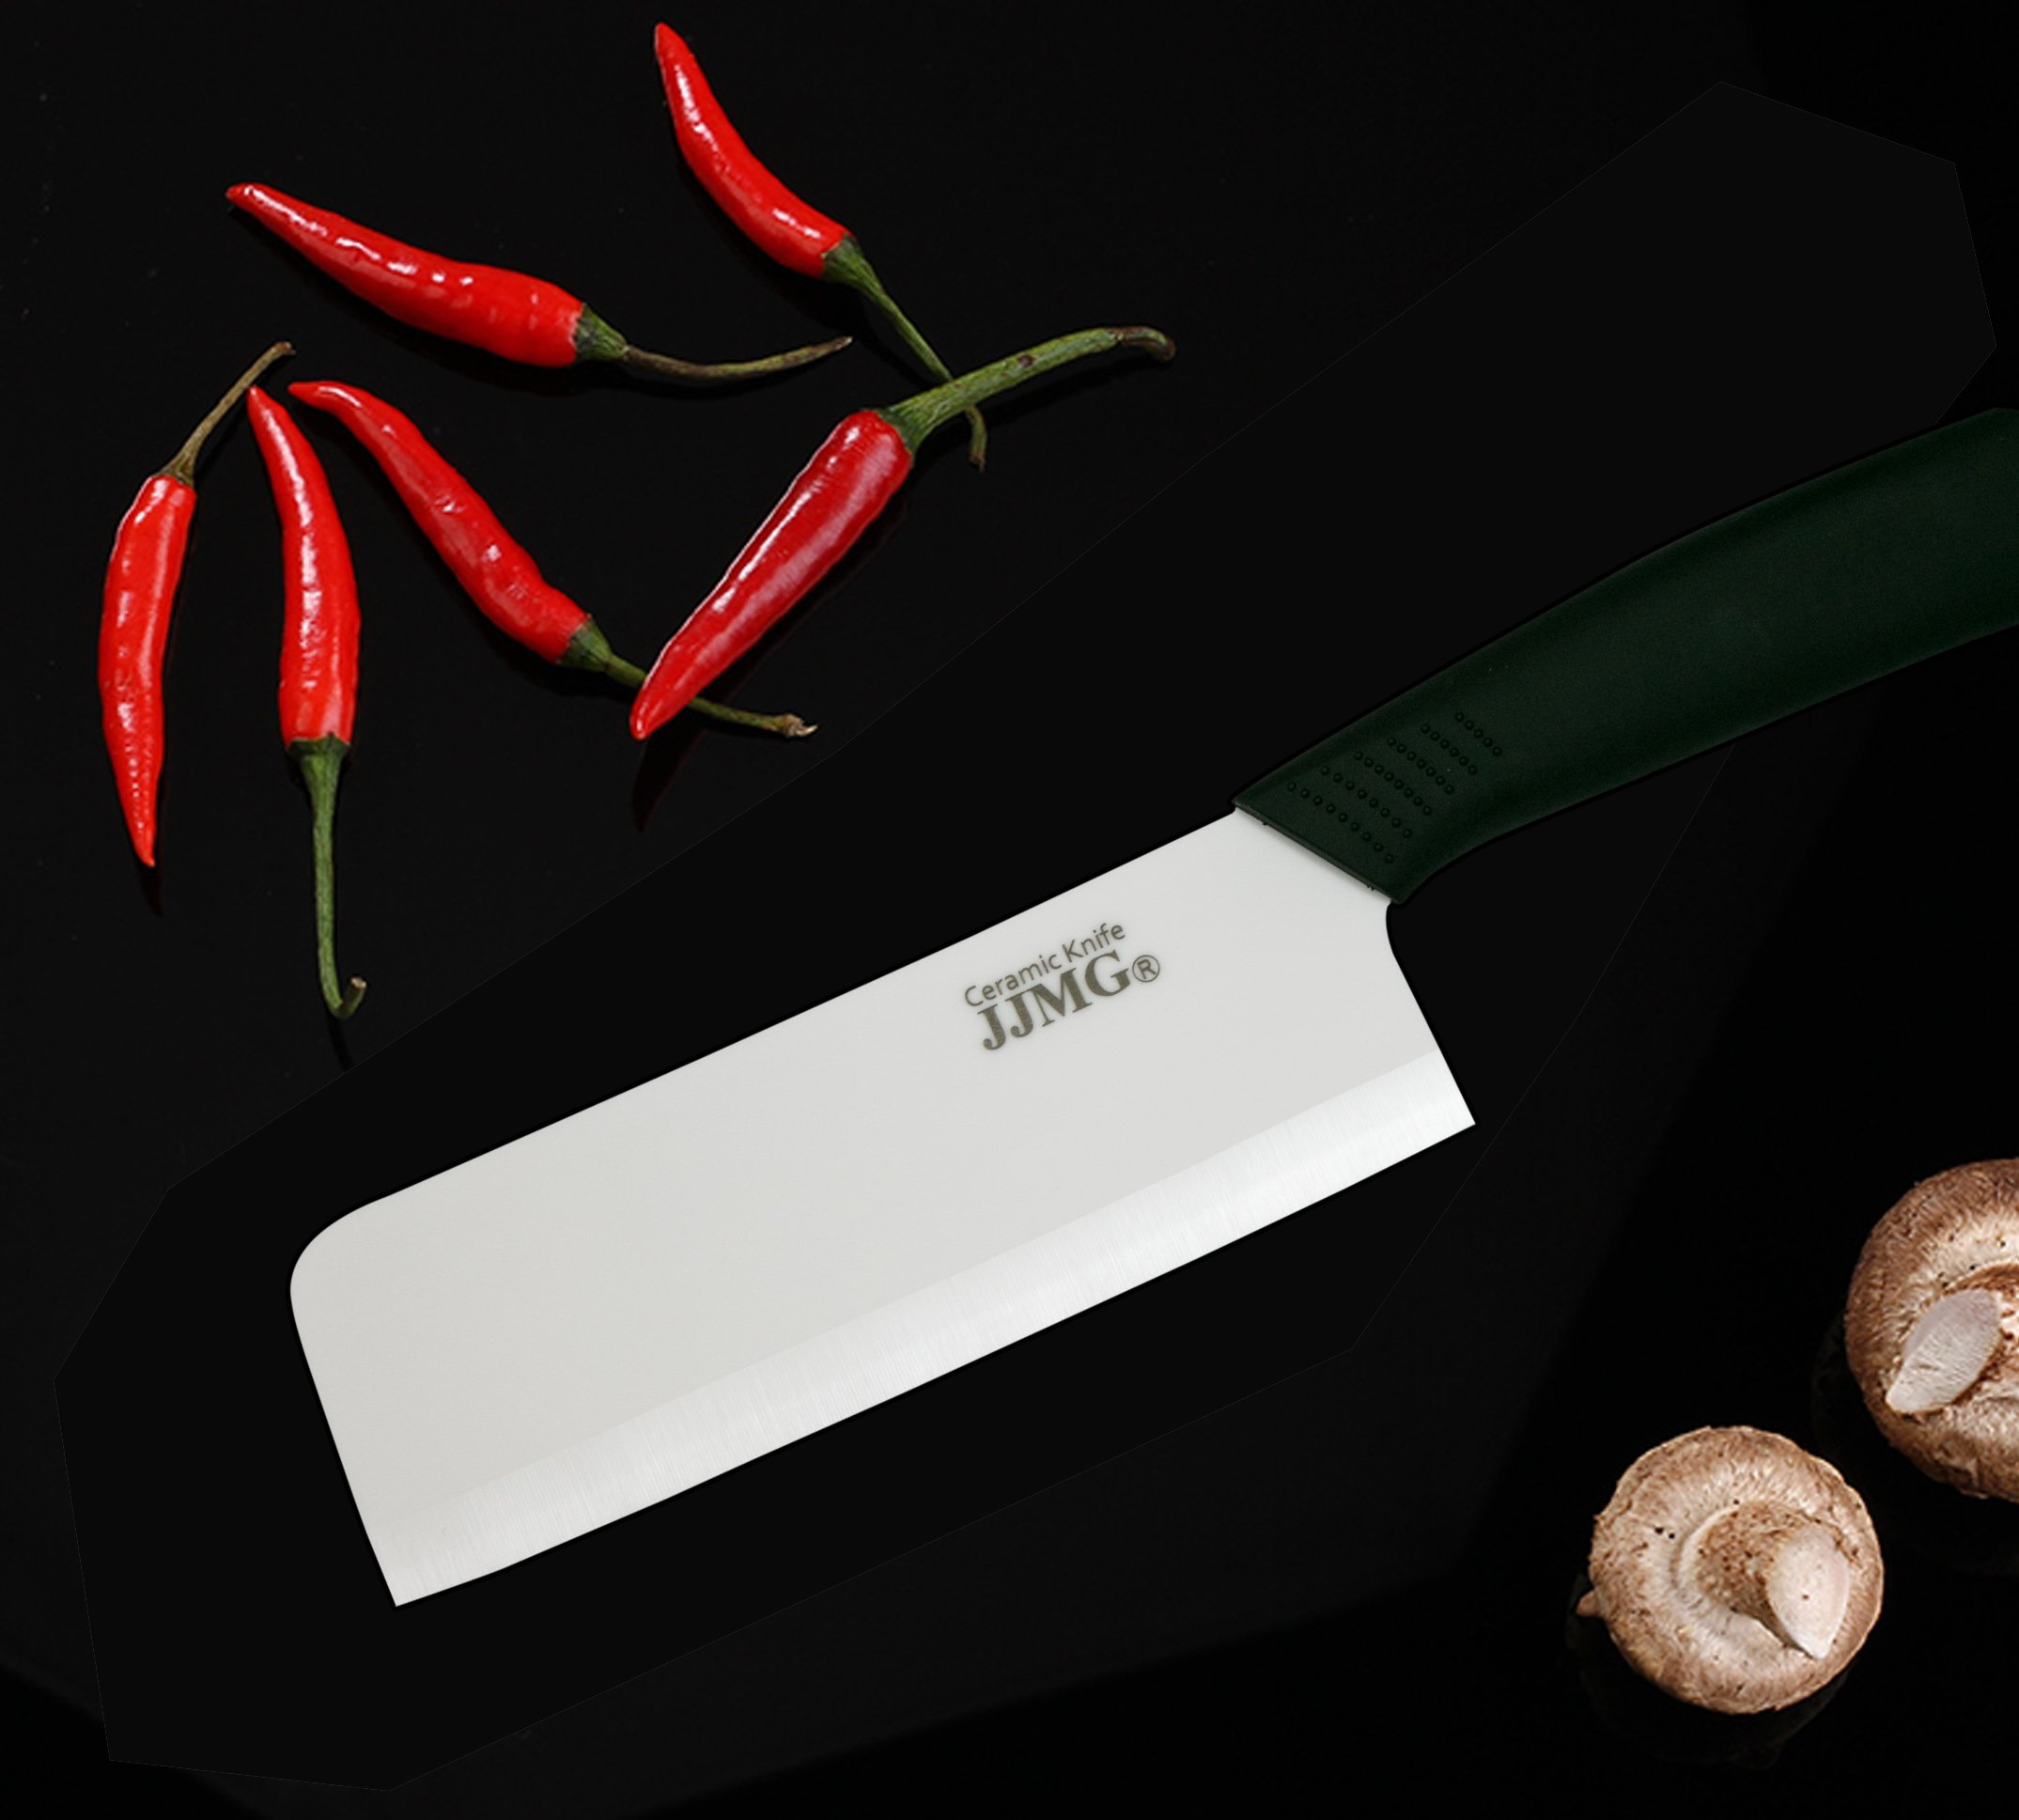 JJMG Ceramic Meat Cleaver Knife Sharp Durable Twice Thicker than Leading Brands non-slip grip Handle Zirconium Blade Cut Slice Dice Steak Pork Chicken Cheese Rust Wear Resistance 8 SHARP & DURABLE LONG LASTING SHARPNESS: Perfect for Cutting Slicing Mincing & Dicing Meat Cheese and Vegetables. Made of High Quality Ceramic, 60 times more Wear-Resistant than Metal knifes. Easy to Maintain, Holds its Sharp Edge. The knifes blades are made by Zirconium, only diamonds are harder, and stays sharp 15 times longer. NO RUST & BPA-FREE: Rust Resistant, Anti-acid and Alkali Material, Non-toxic, No Contamination, No Metal smell, Easy to Use. will retain its original sharpness up to 15 times longer than steel blades. You will never need sharpening any more! NO OXIDATION: Keep your vegetables free from oxidation when cutting with these ceramic knifes. Keep your vegetables meat & food fresh for a longer period of time.